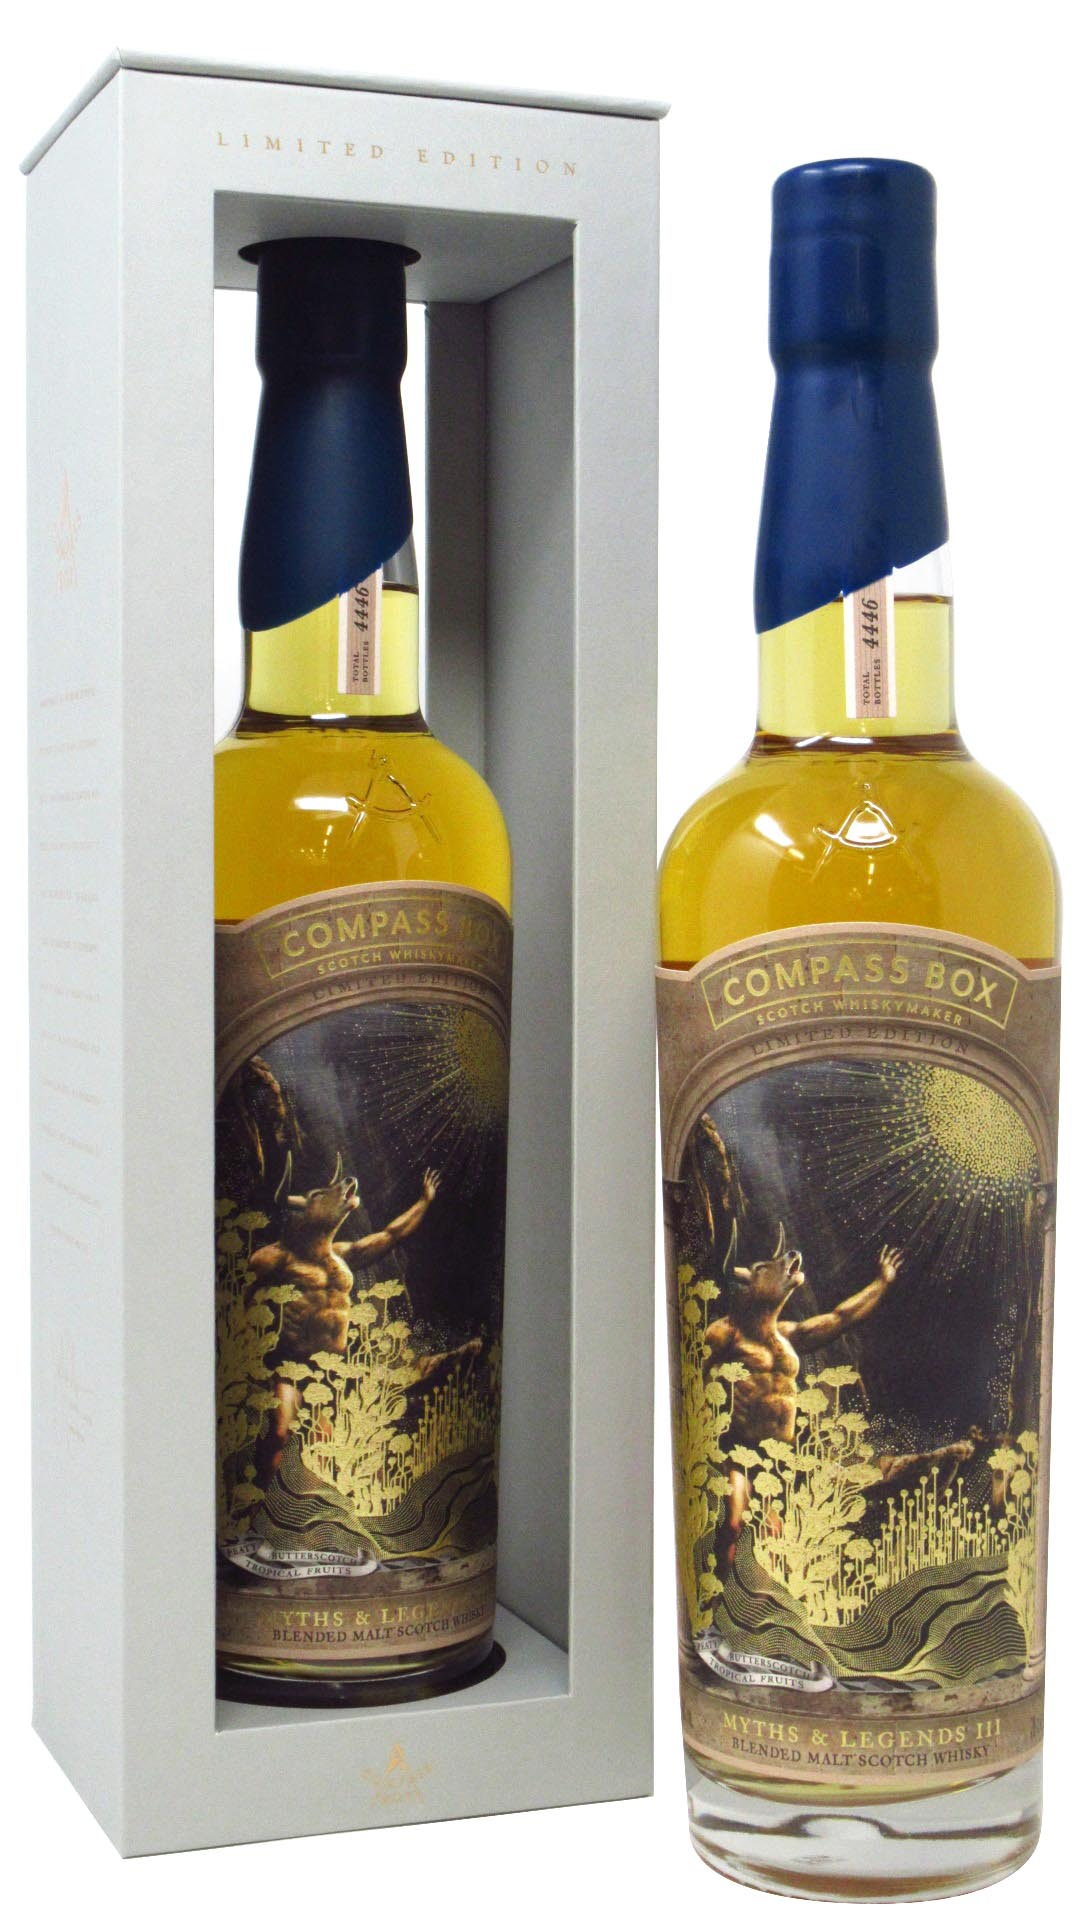 Compass Box - Myths & Legends III - Limited Edition